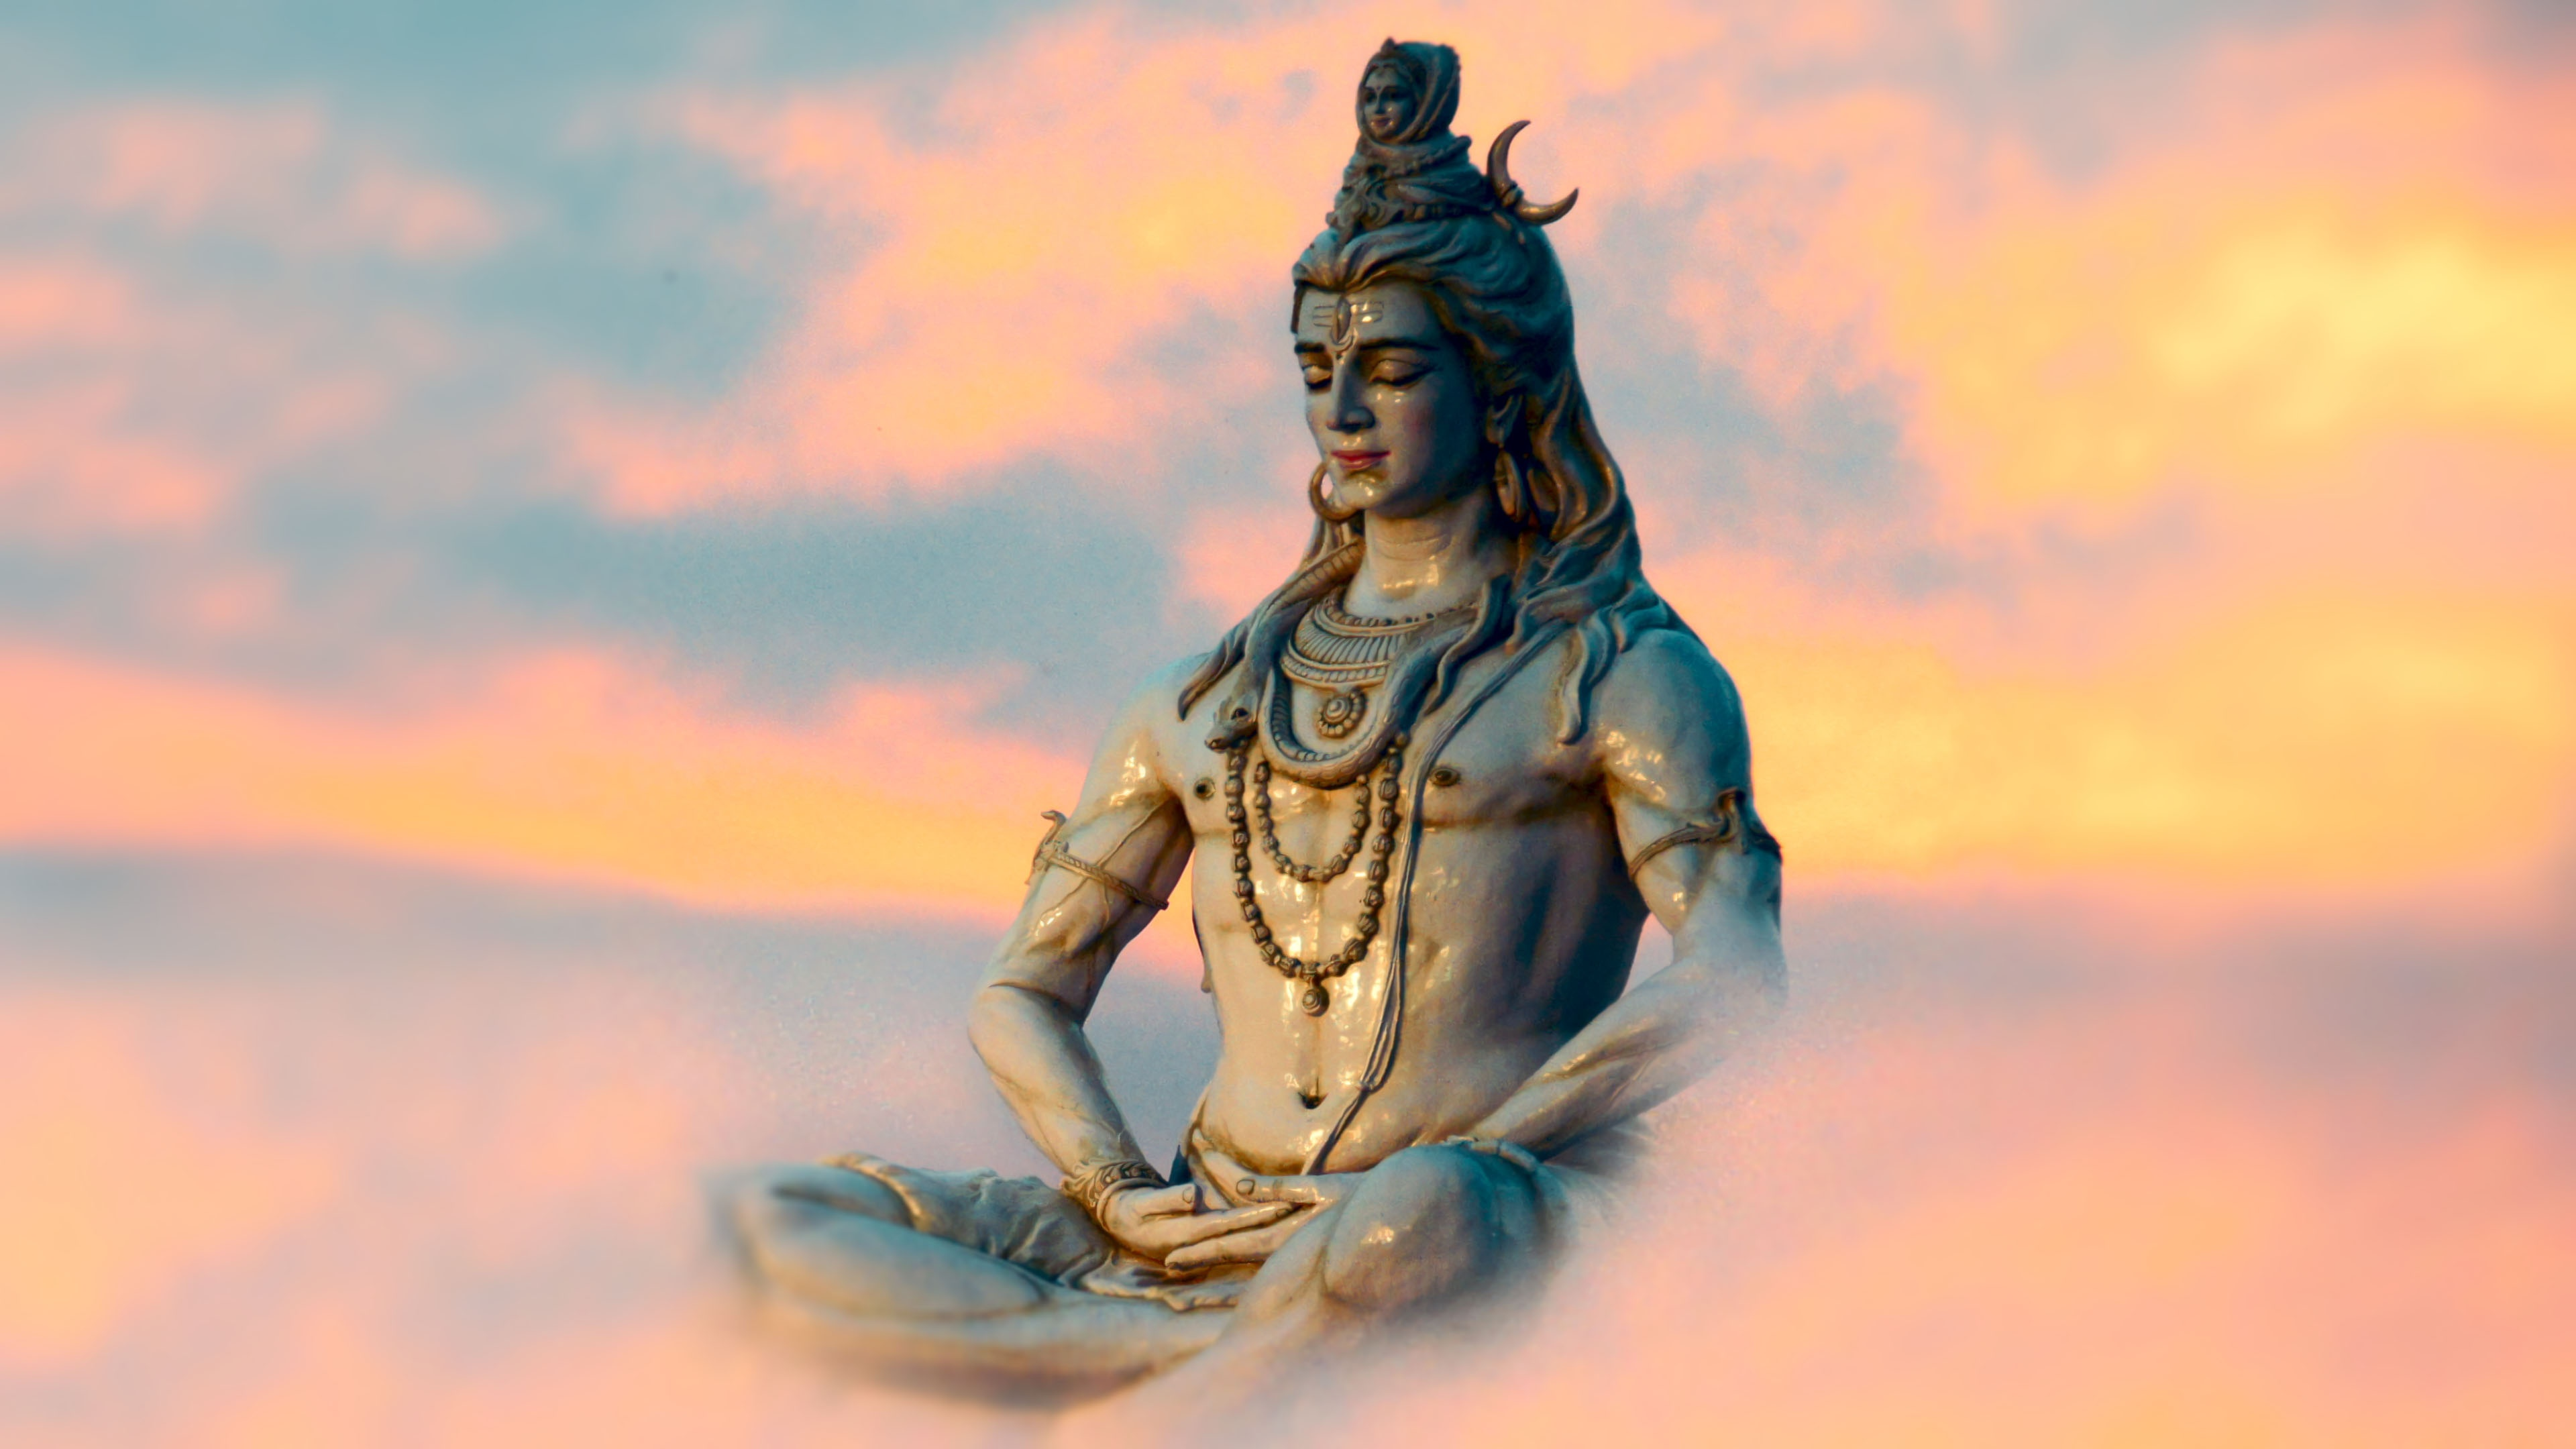 Temple Quotes Wallpaper Pc Hd Shiva Statue Wallpaper Other Wallpaper Better